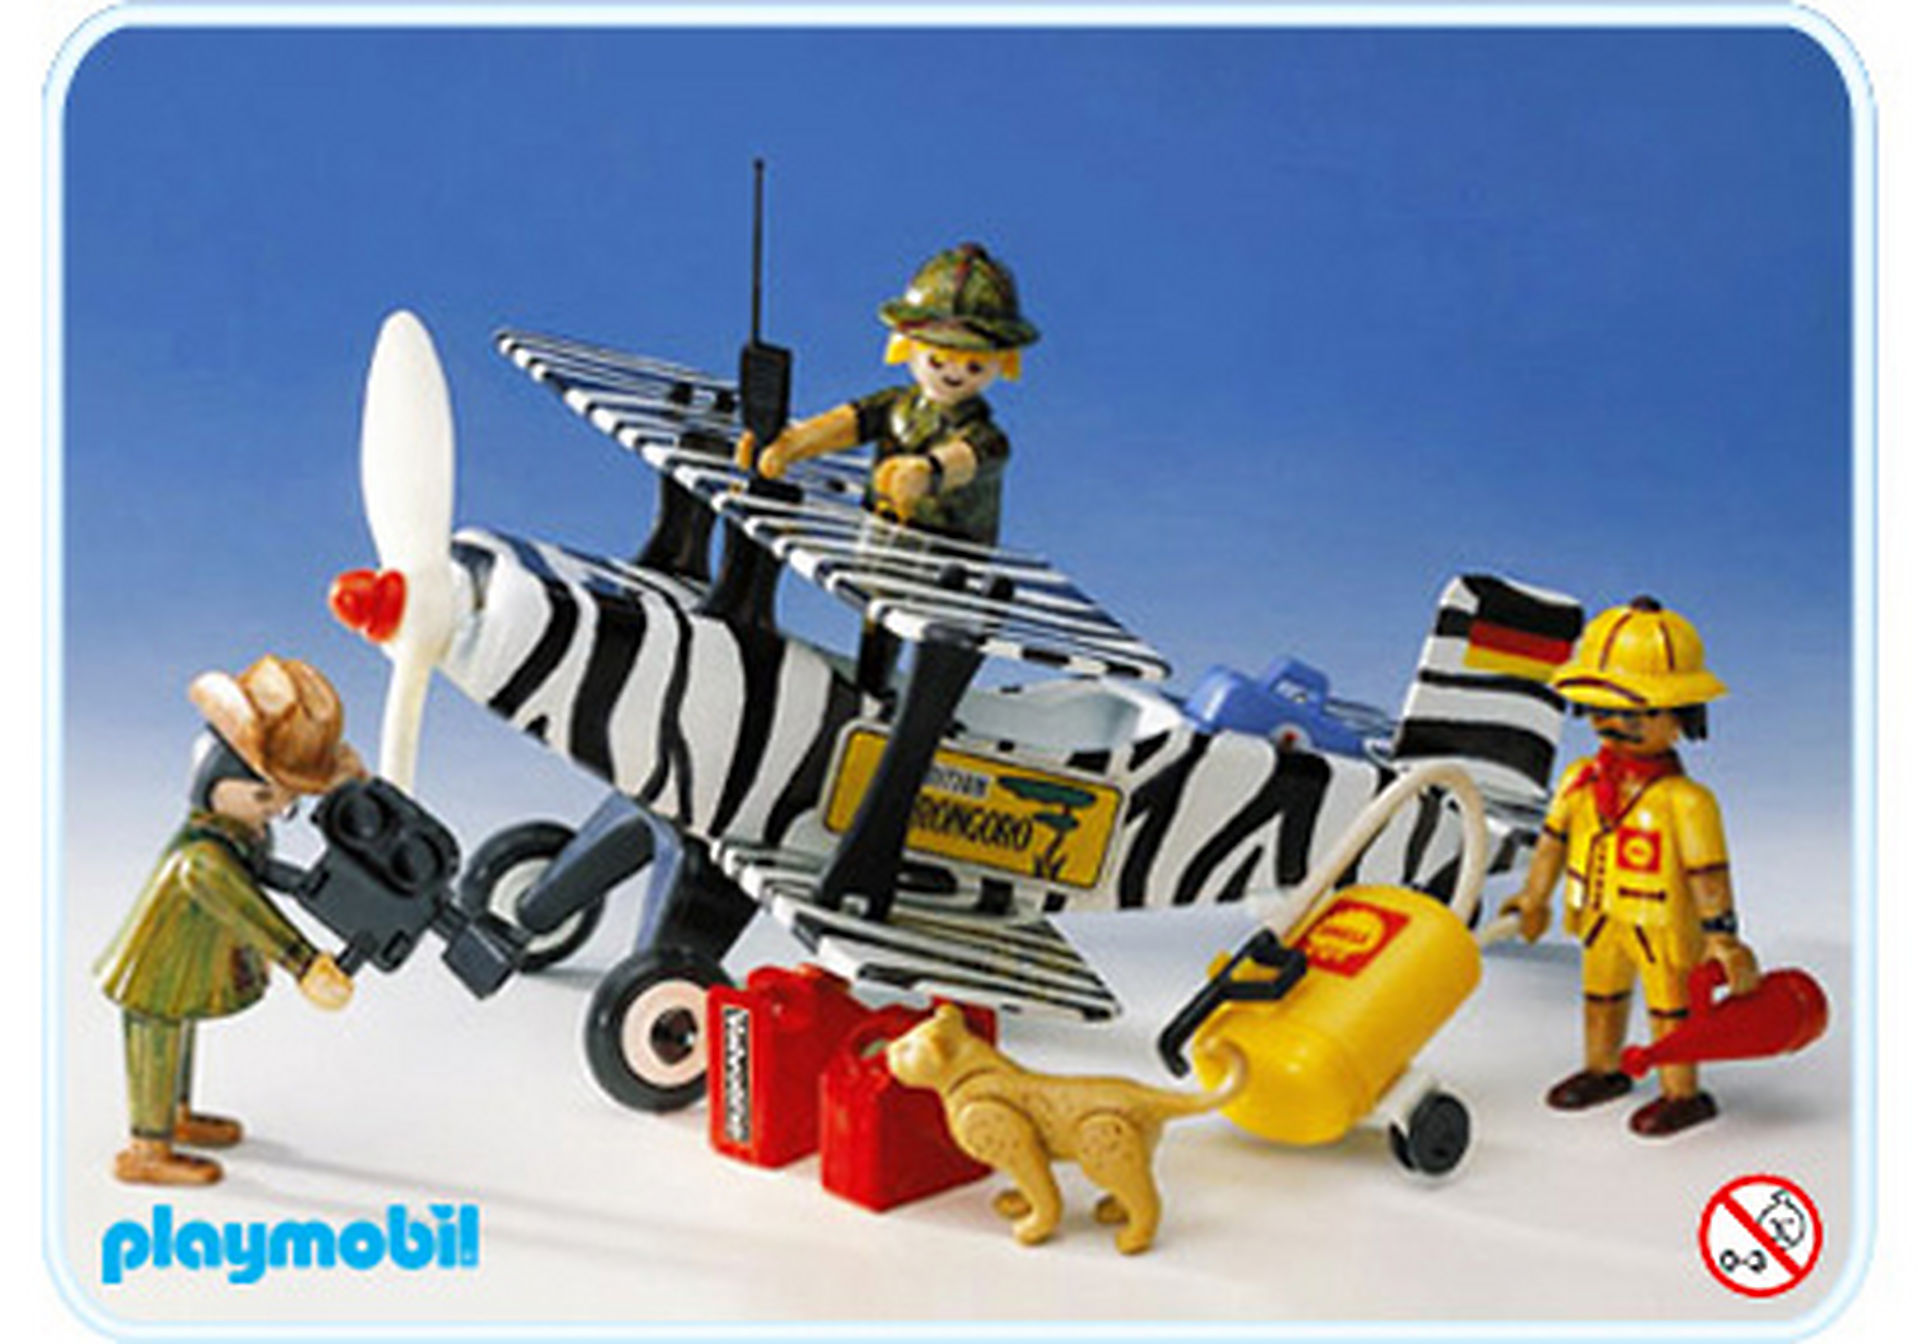 http://media.playmobil.com/i/playmobil/3676-A_product_detail/Safari-Flugzeug